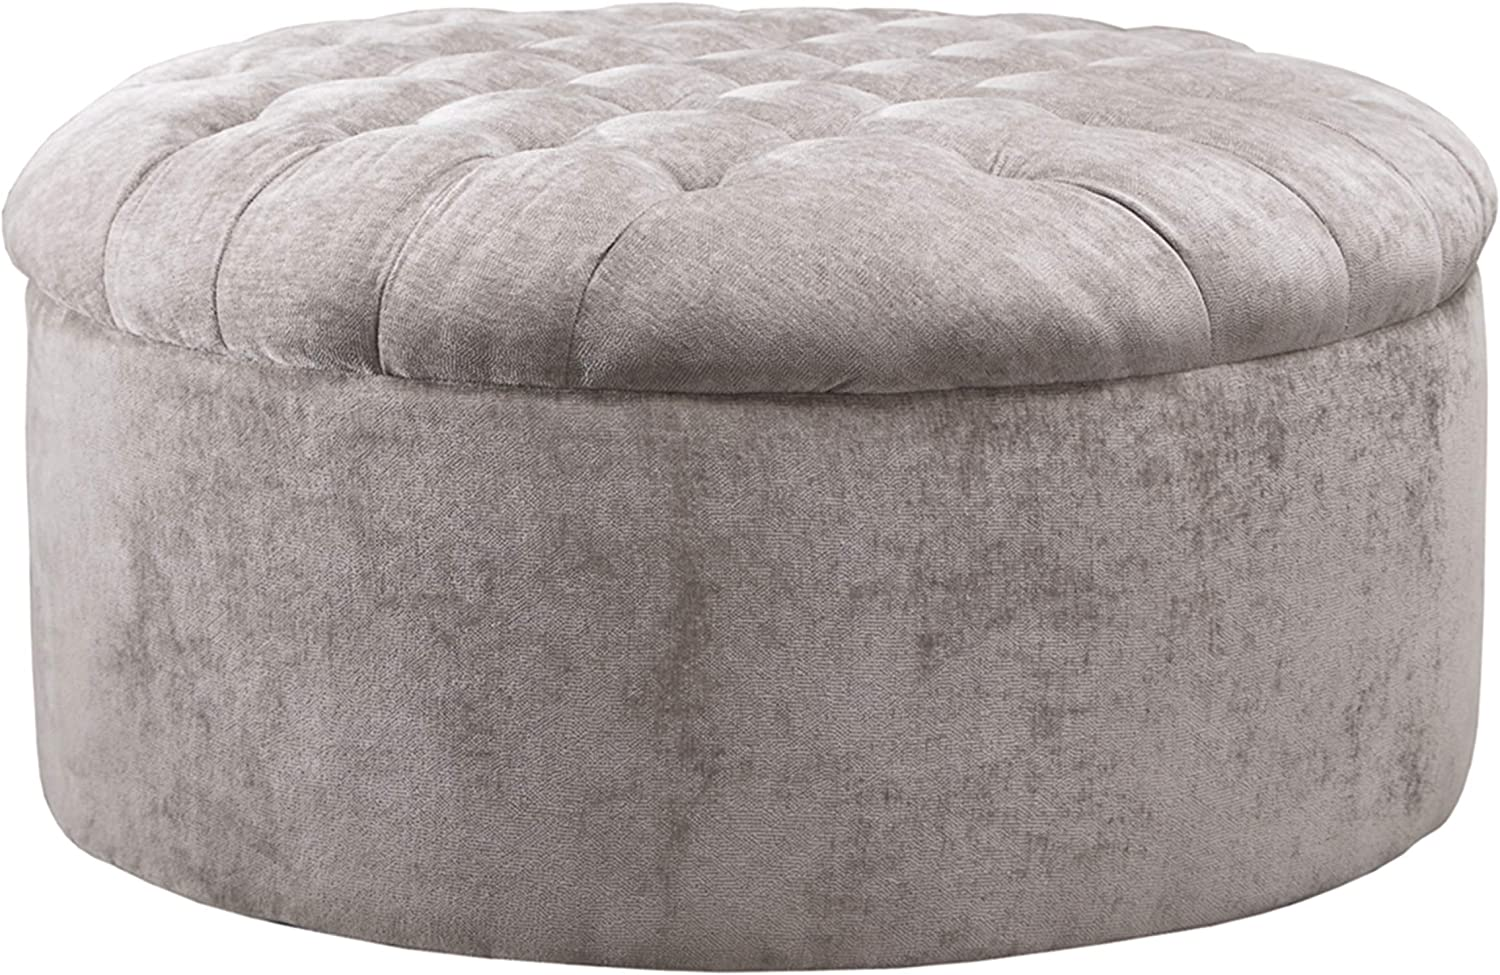 Signature Design by Ashley - Carnaby Oversized Round Velvet Ottoman, Silver